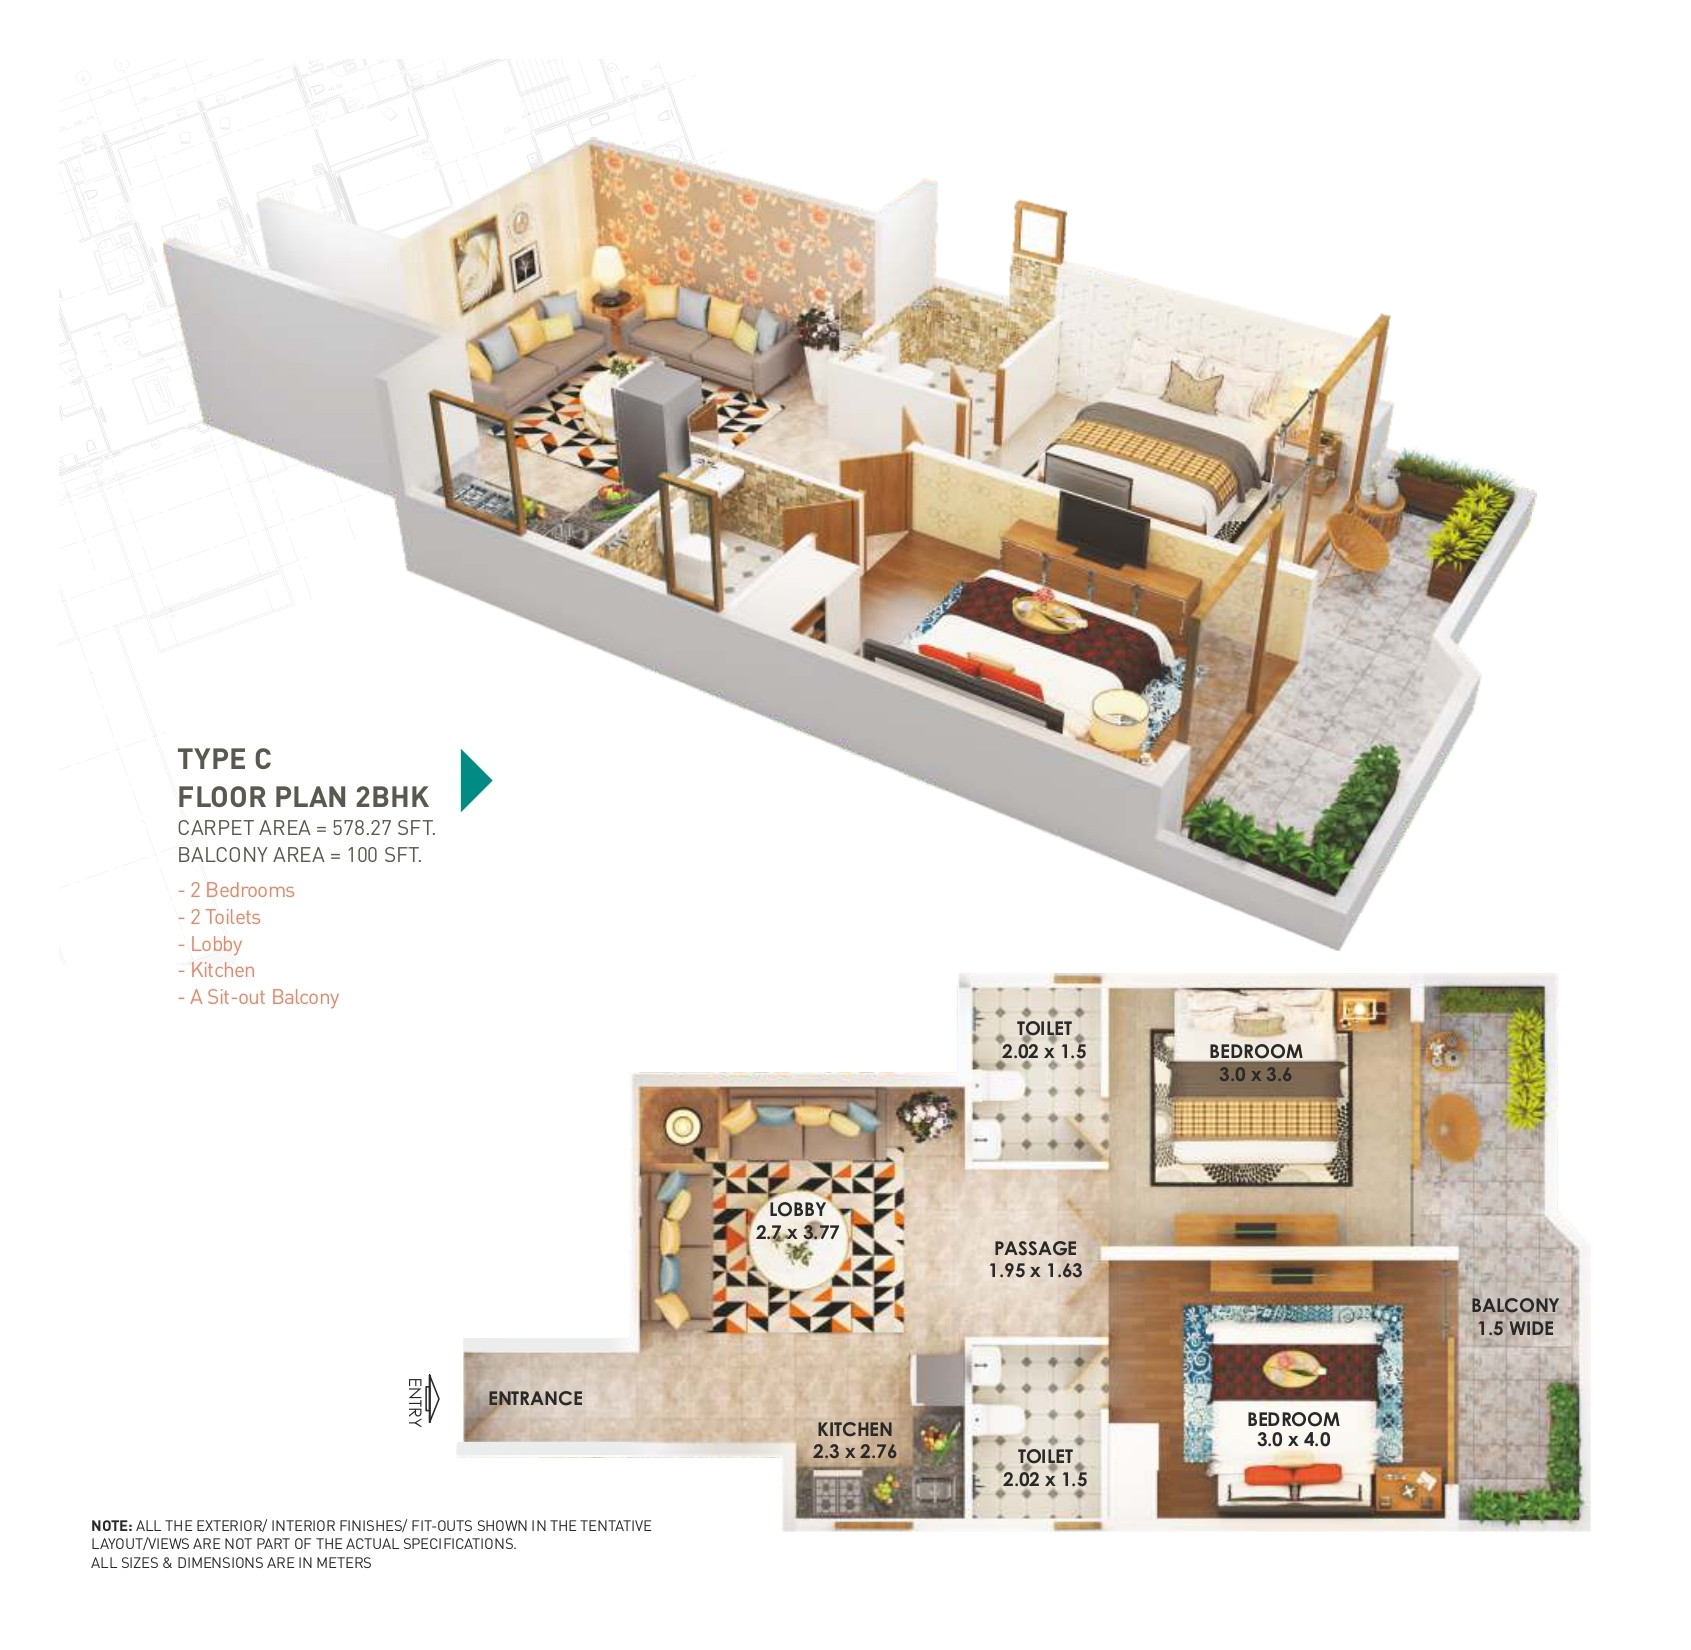 Pyramid Heights 2BHK Type C